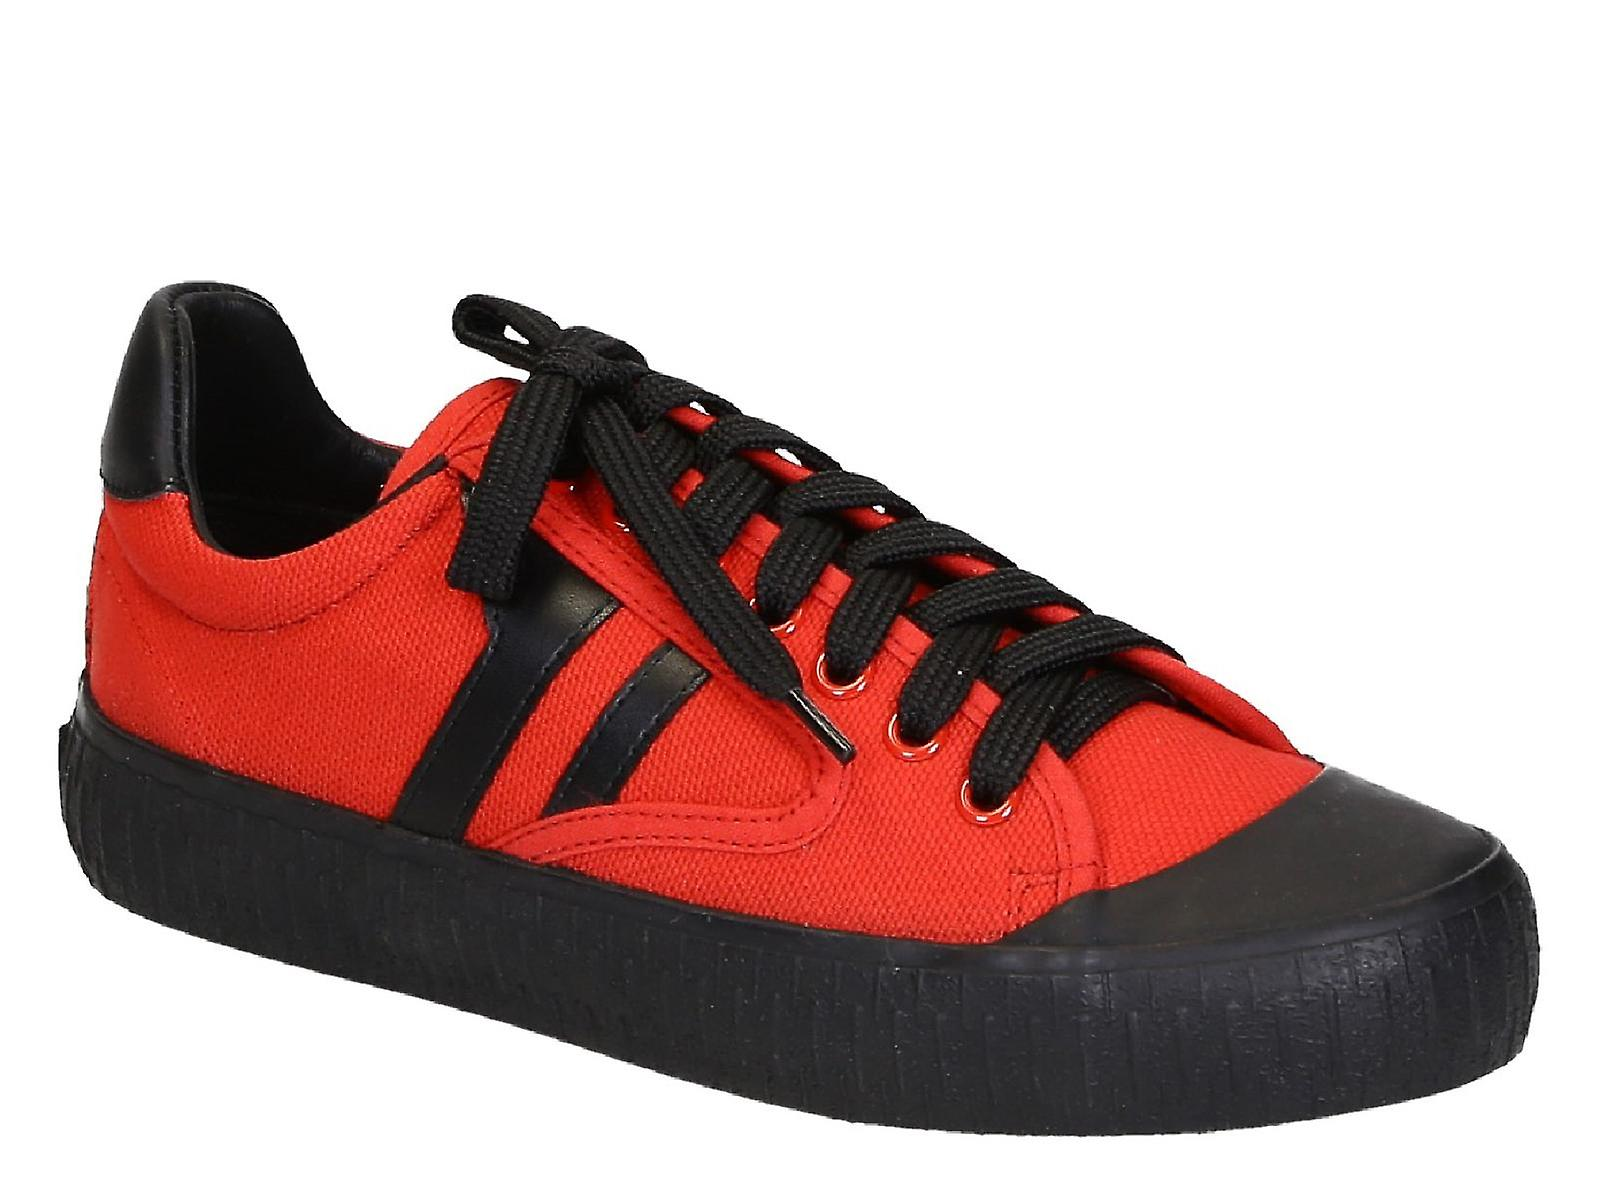 C�line women's low top sneaker shoes in red canvas q3Ry1